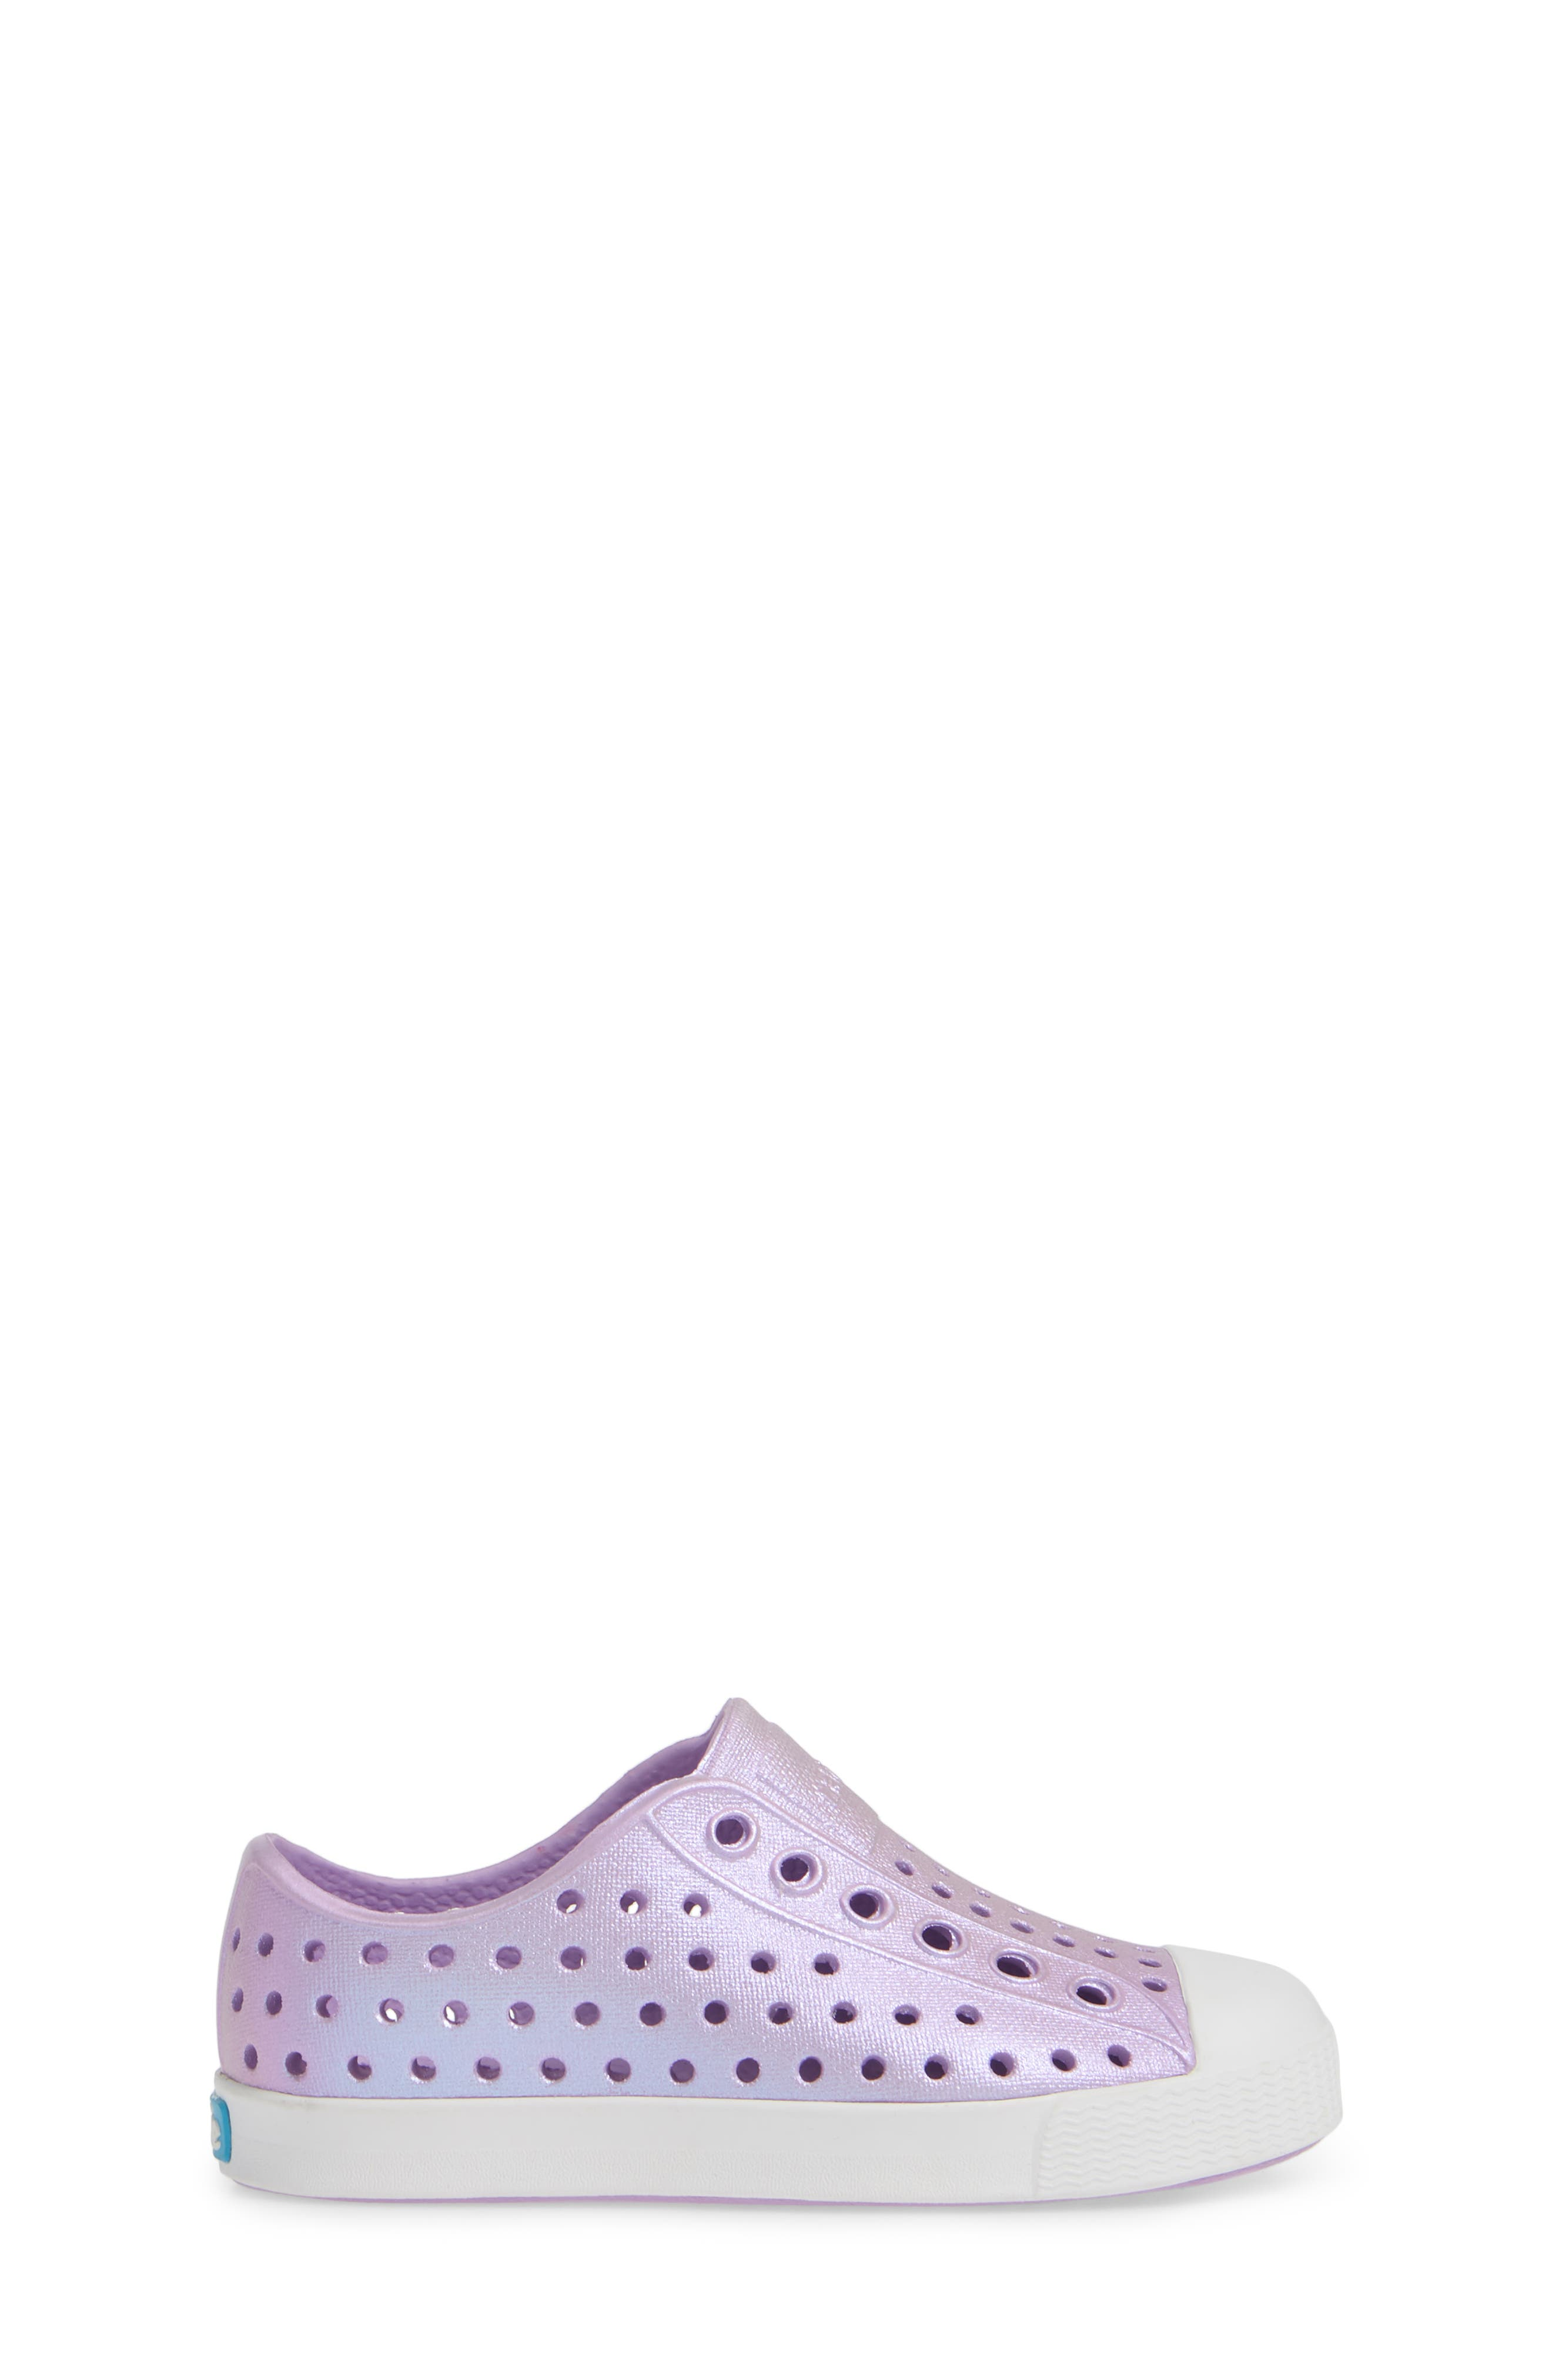 NATIVE SHOES, Jefferson Iridescent Slip-On Vegan Sneaker, Alternate thumbnail 3, color, LAVENDER/ SHELL WHITE/ GALAXY